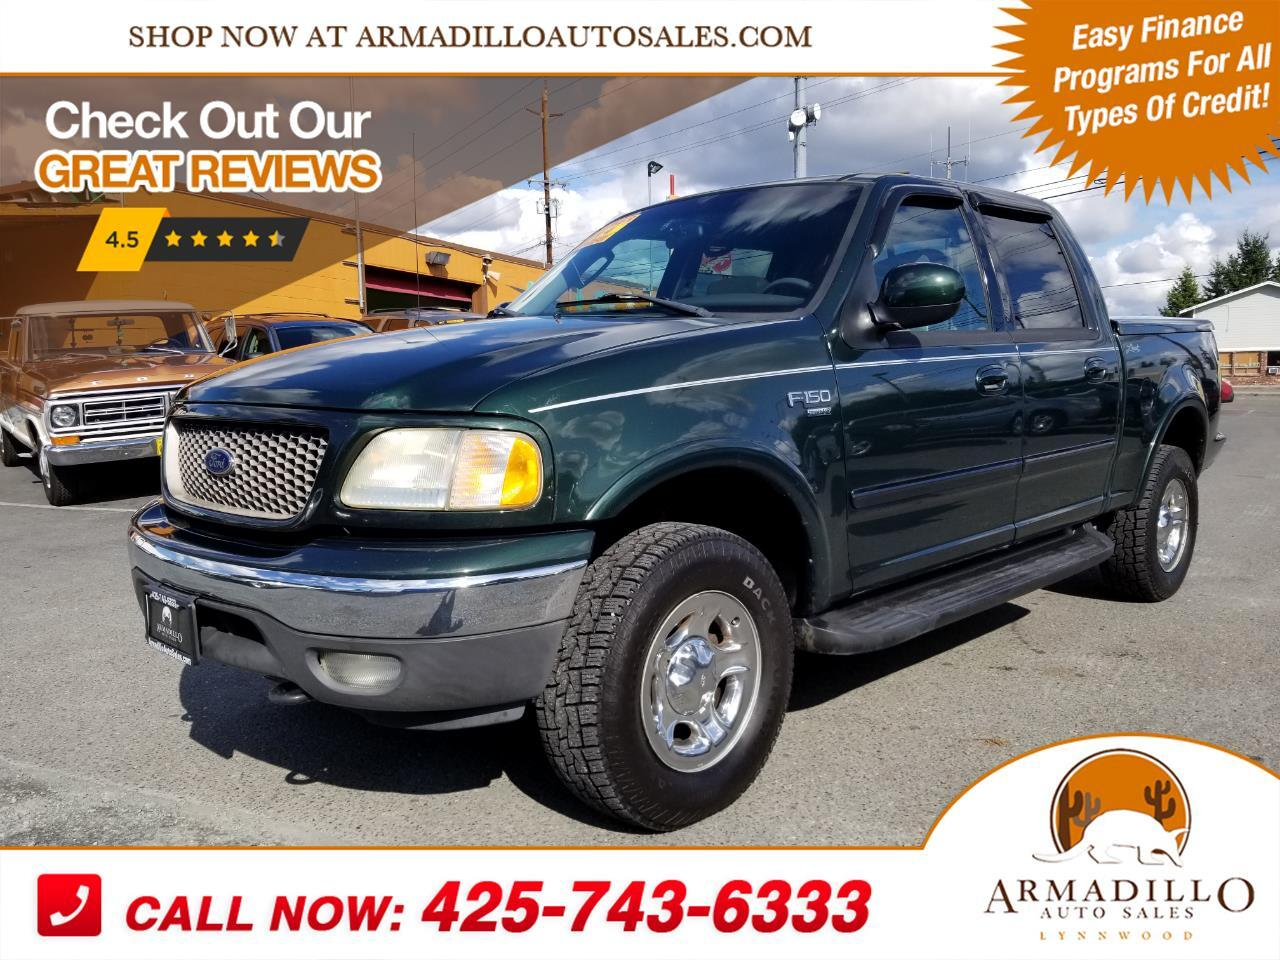 2002 Ford F-150 Lariat SuperCrew 4WD